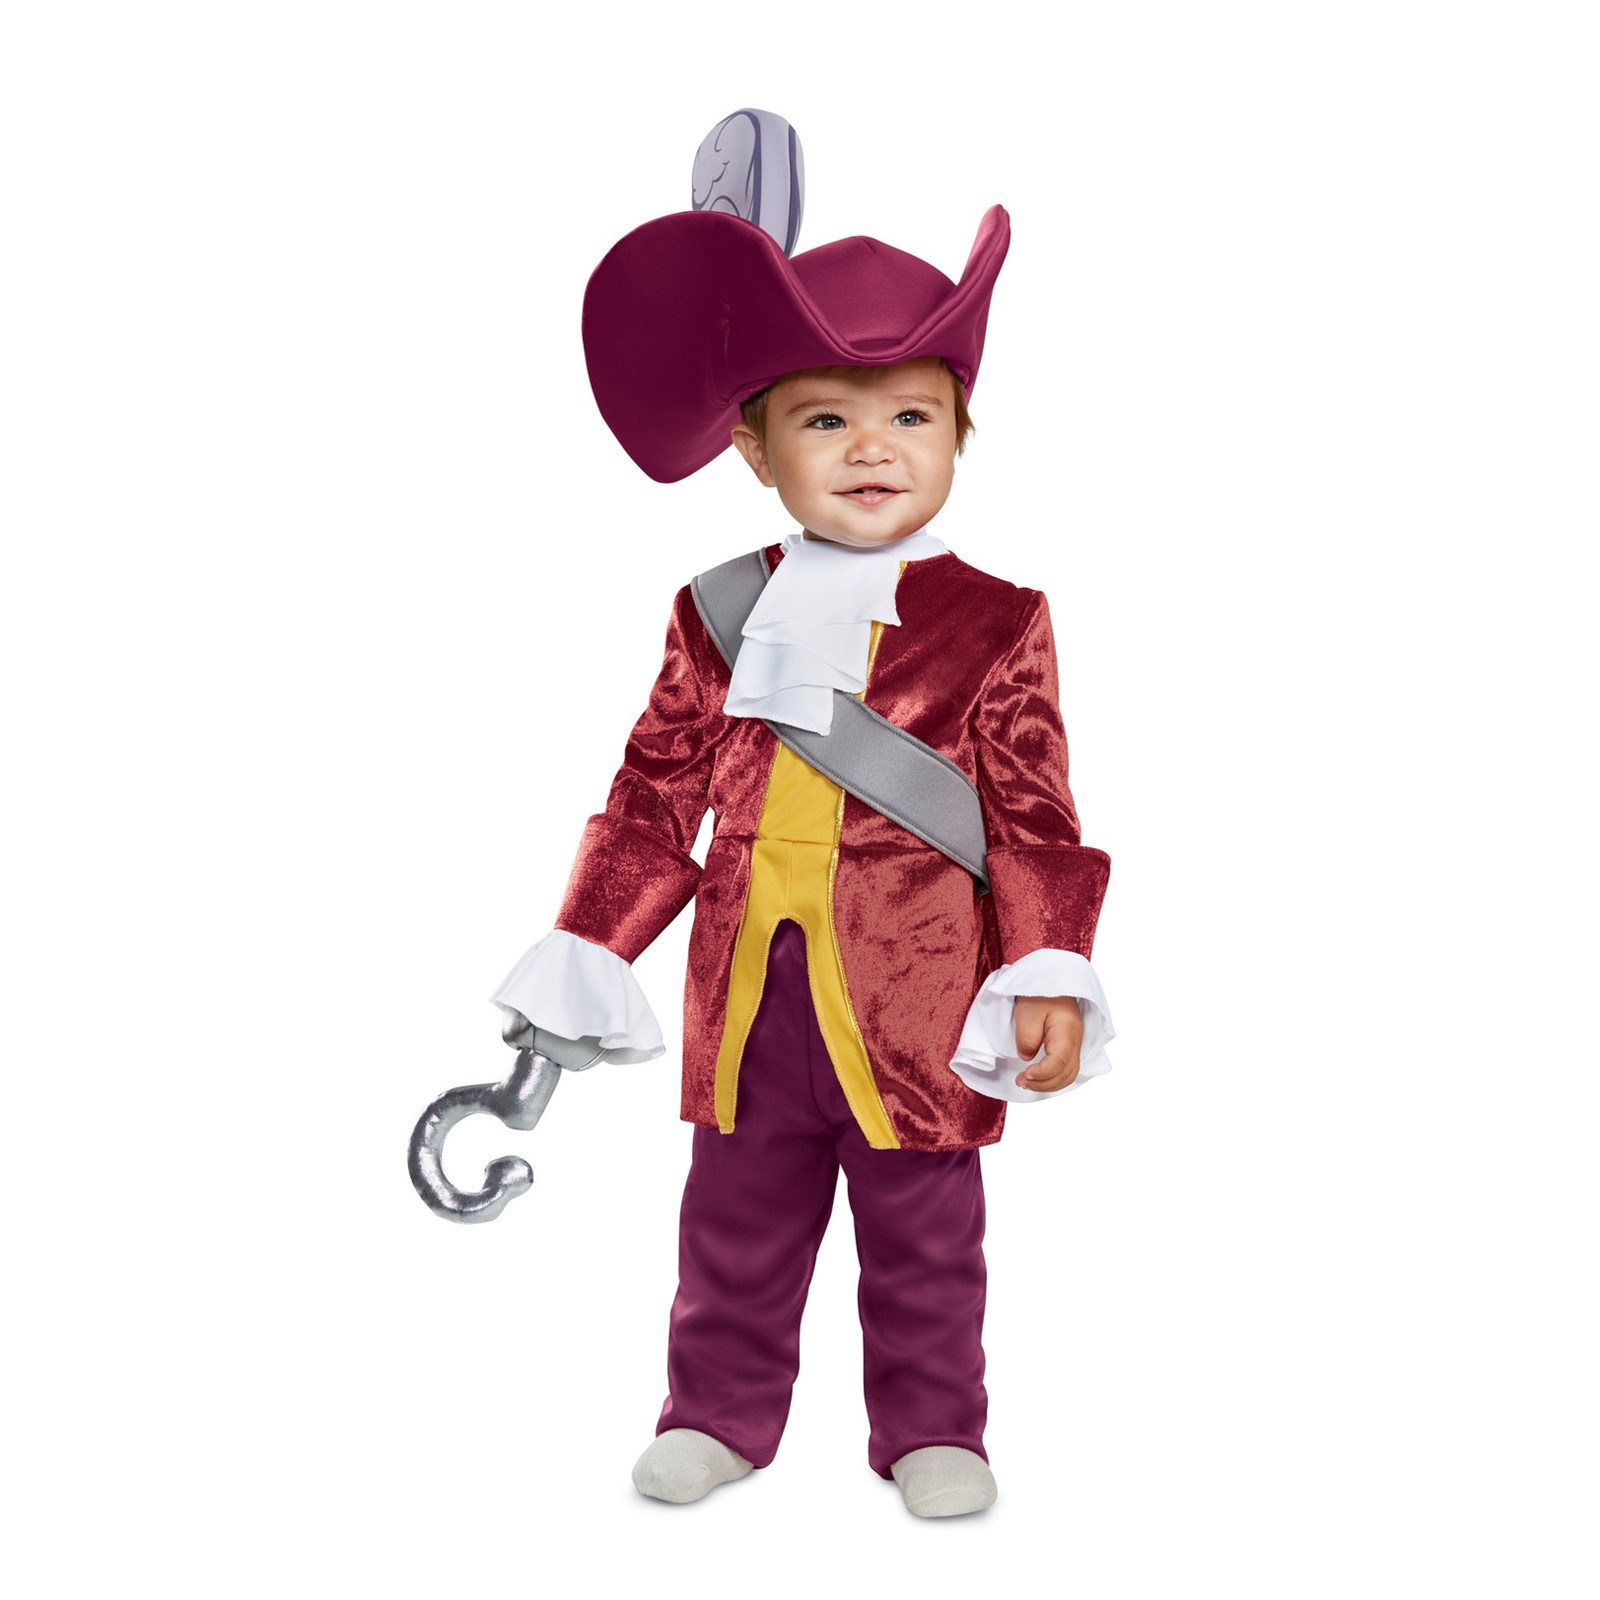 be06d37131ce Peter Pan Captain Hook Classic Infant Halloween Costume - Walmart.com